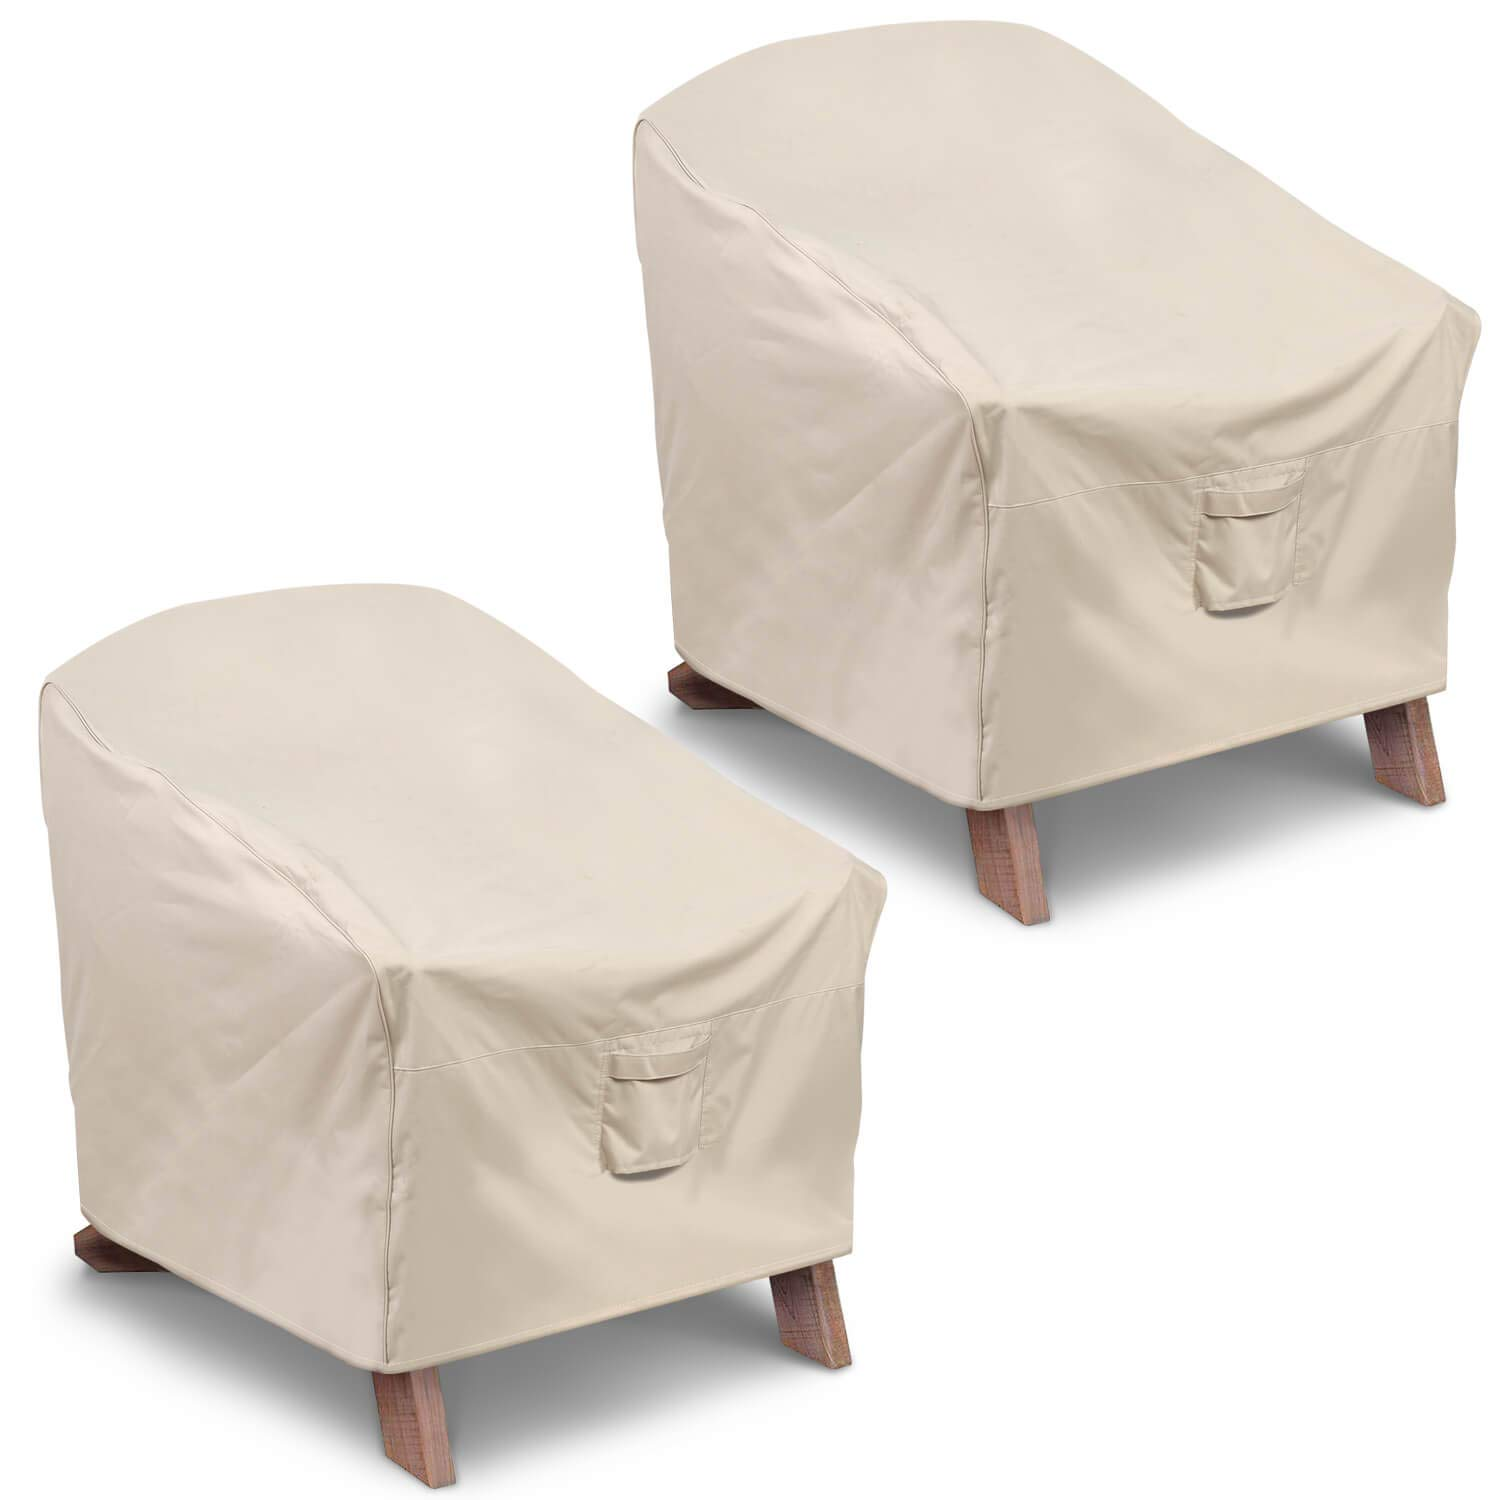 Vailge Patio Adirondack Chair Covers, Heavy Duty Patio Chair Cover, Waterproof Outdoor Lawn Patio Furniture Covers (Standard - 2 Pack,Beige)